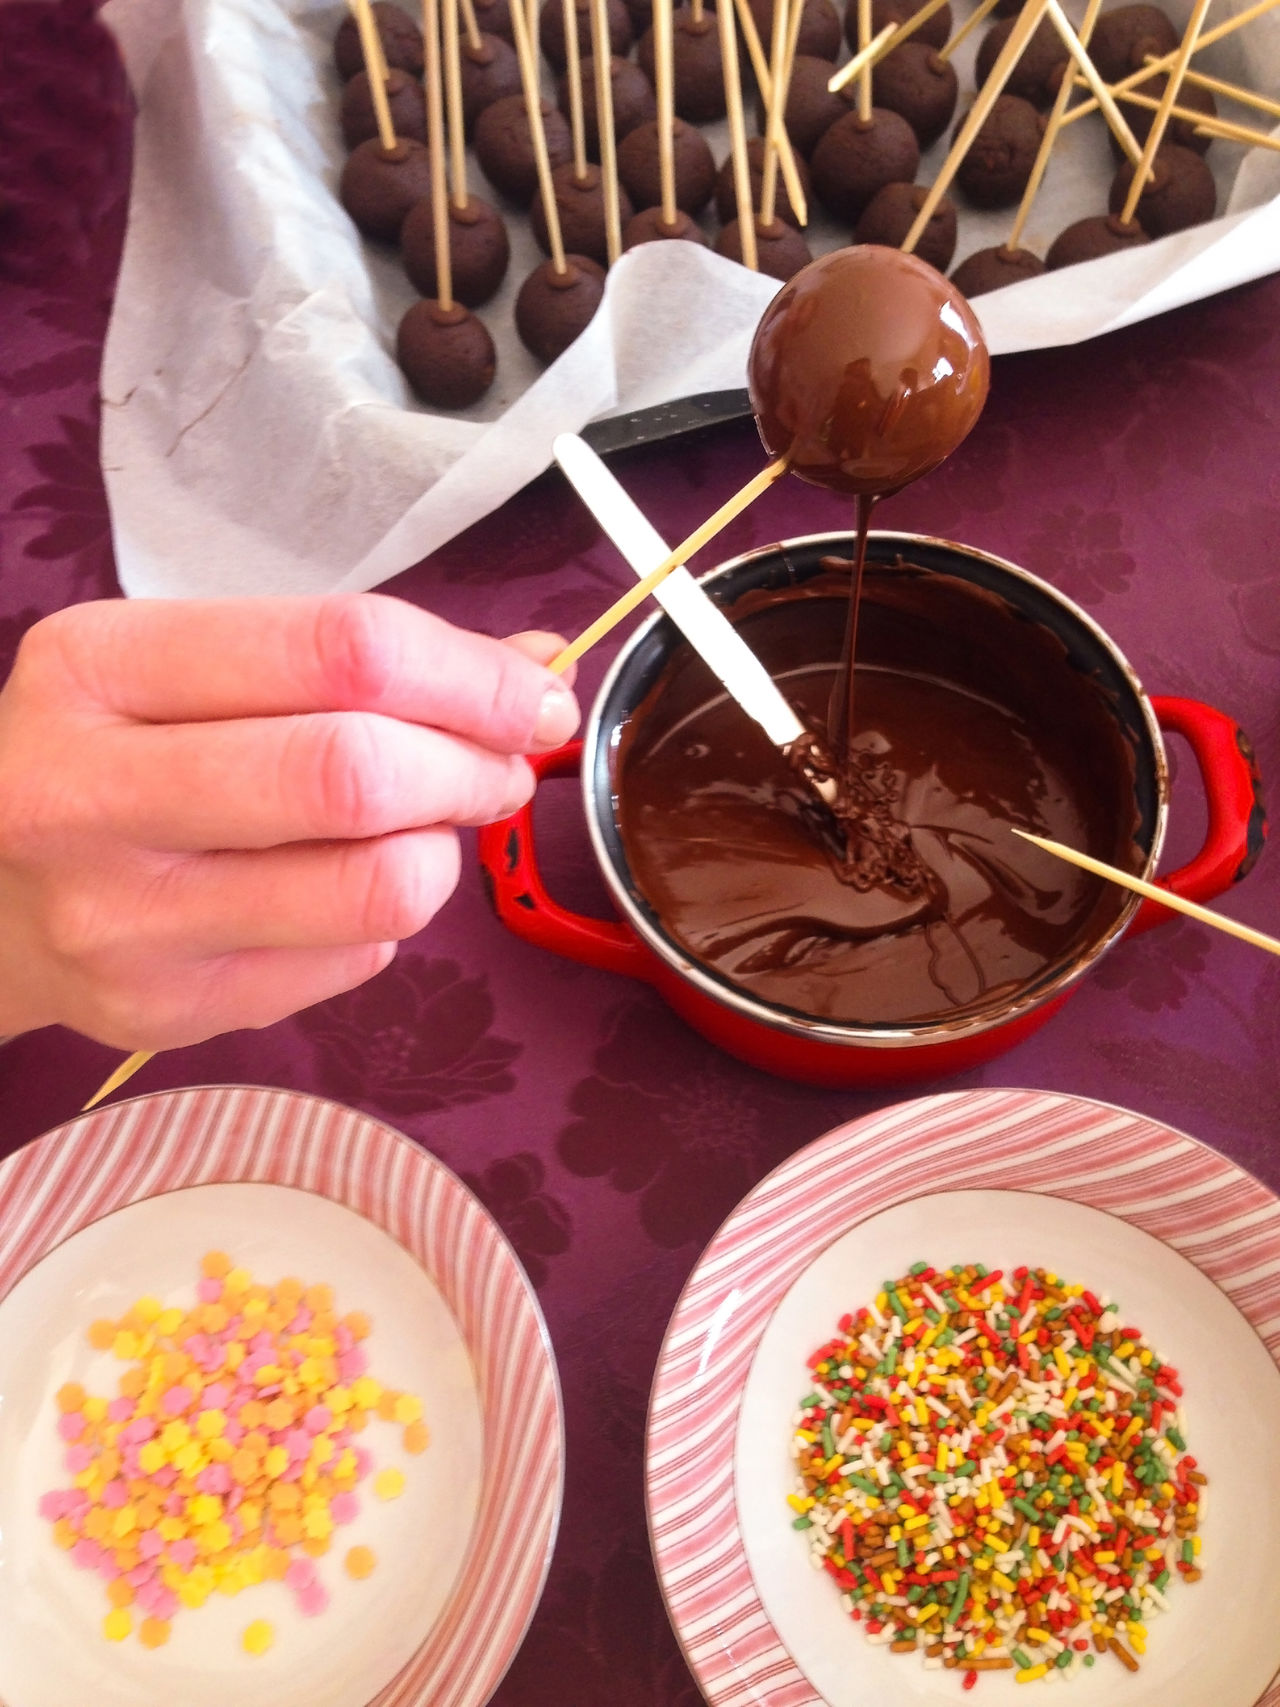 Woman making chocolate cakepops Bowl Cake Cakepop Cakepops Chocolate Close-up Cuisine Dessert Food Food And Drink Indoors  Making Overhead View Plate Popcake Preparation  Sprinkles Sweet Food Table Top Perspective Variation